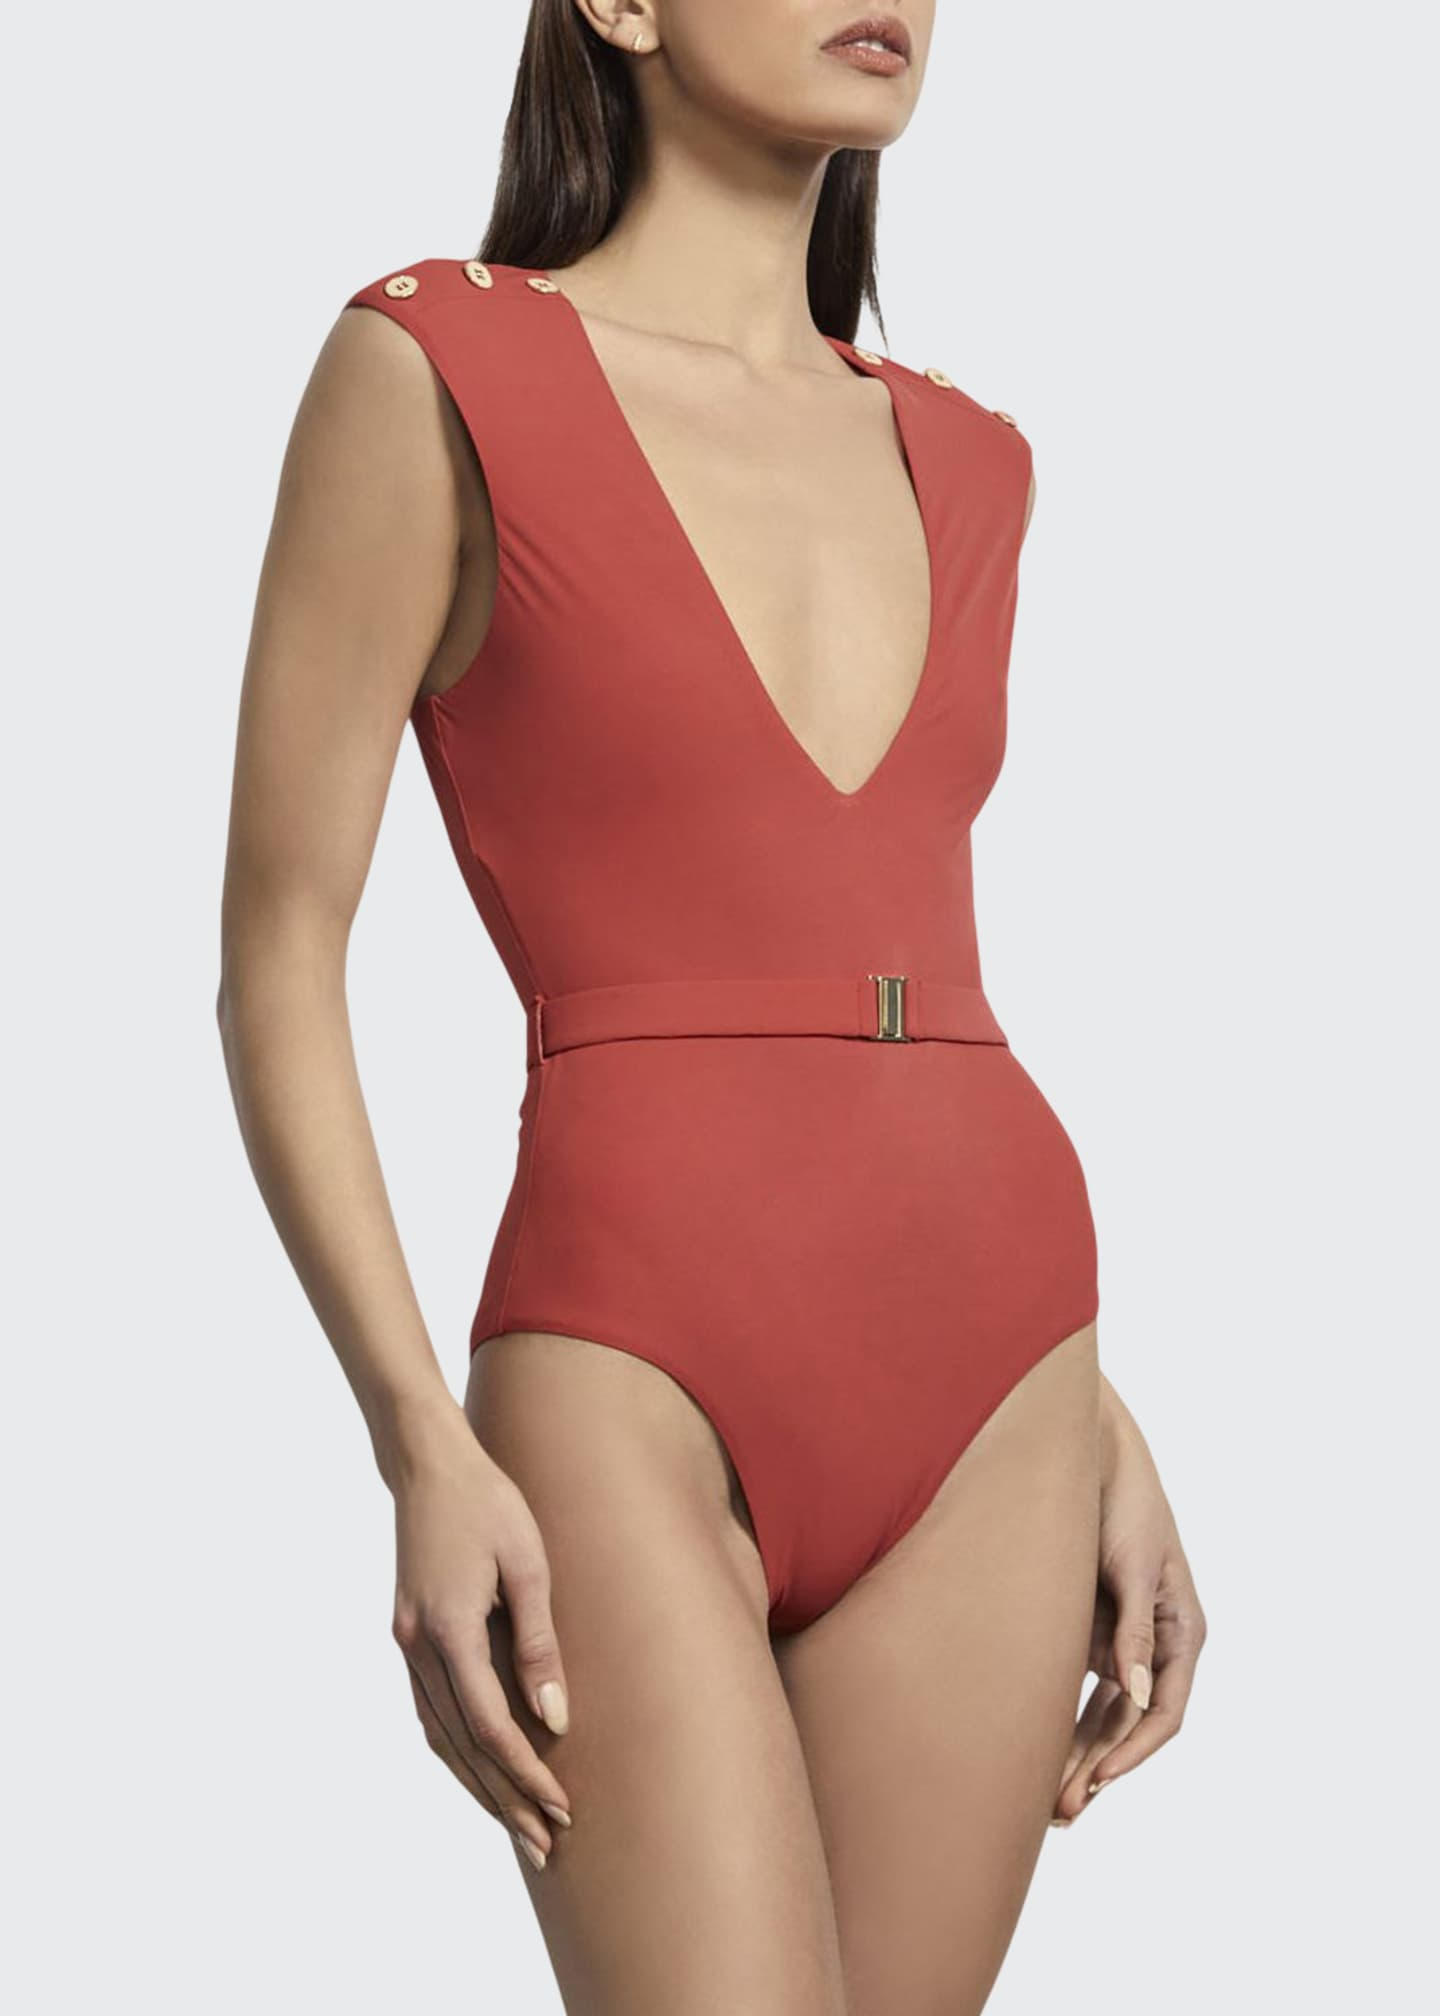 Amaio Swim Fantine Plunging Belted Maillot One-Piece Swimsuit